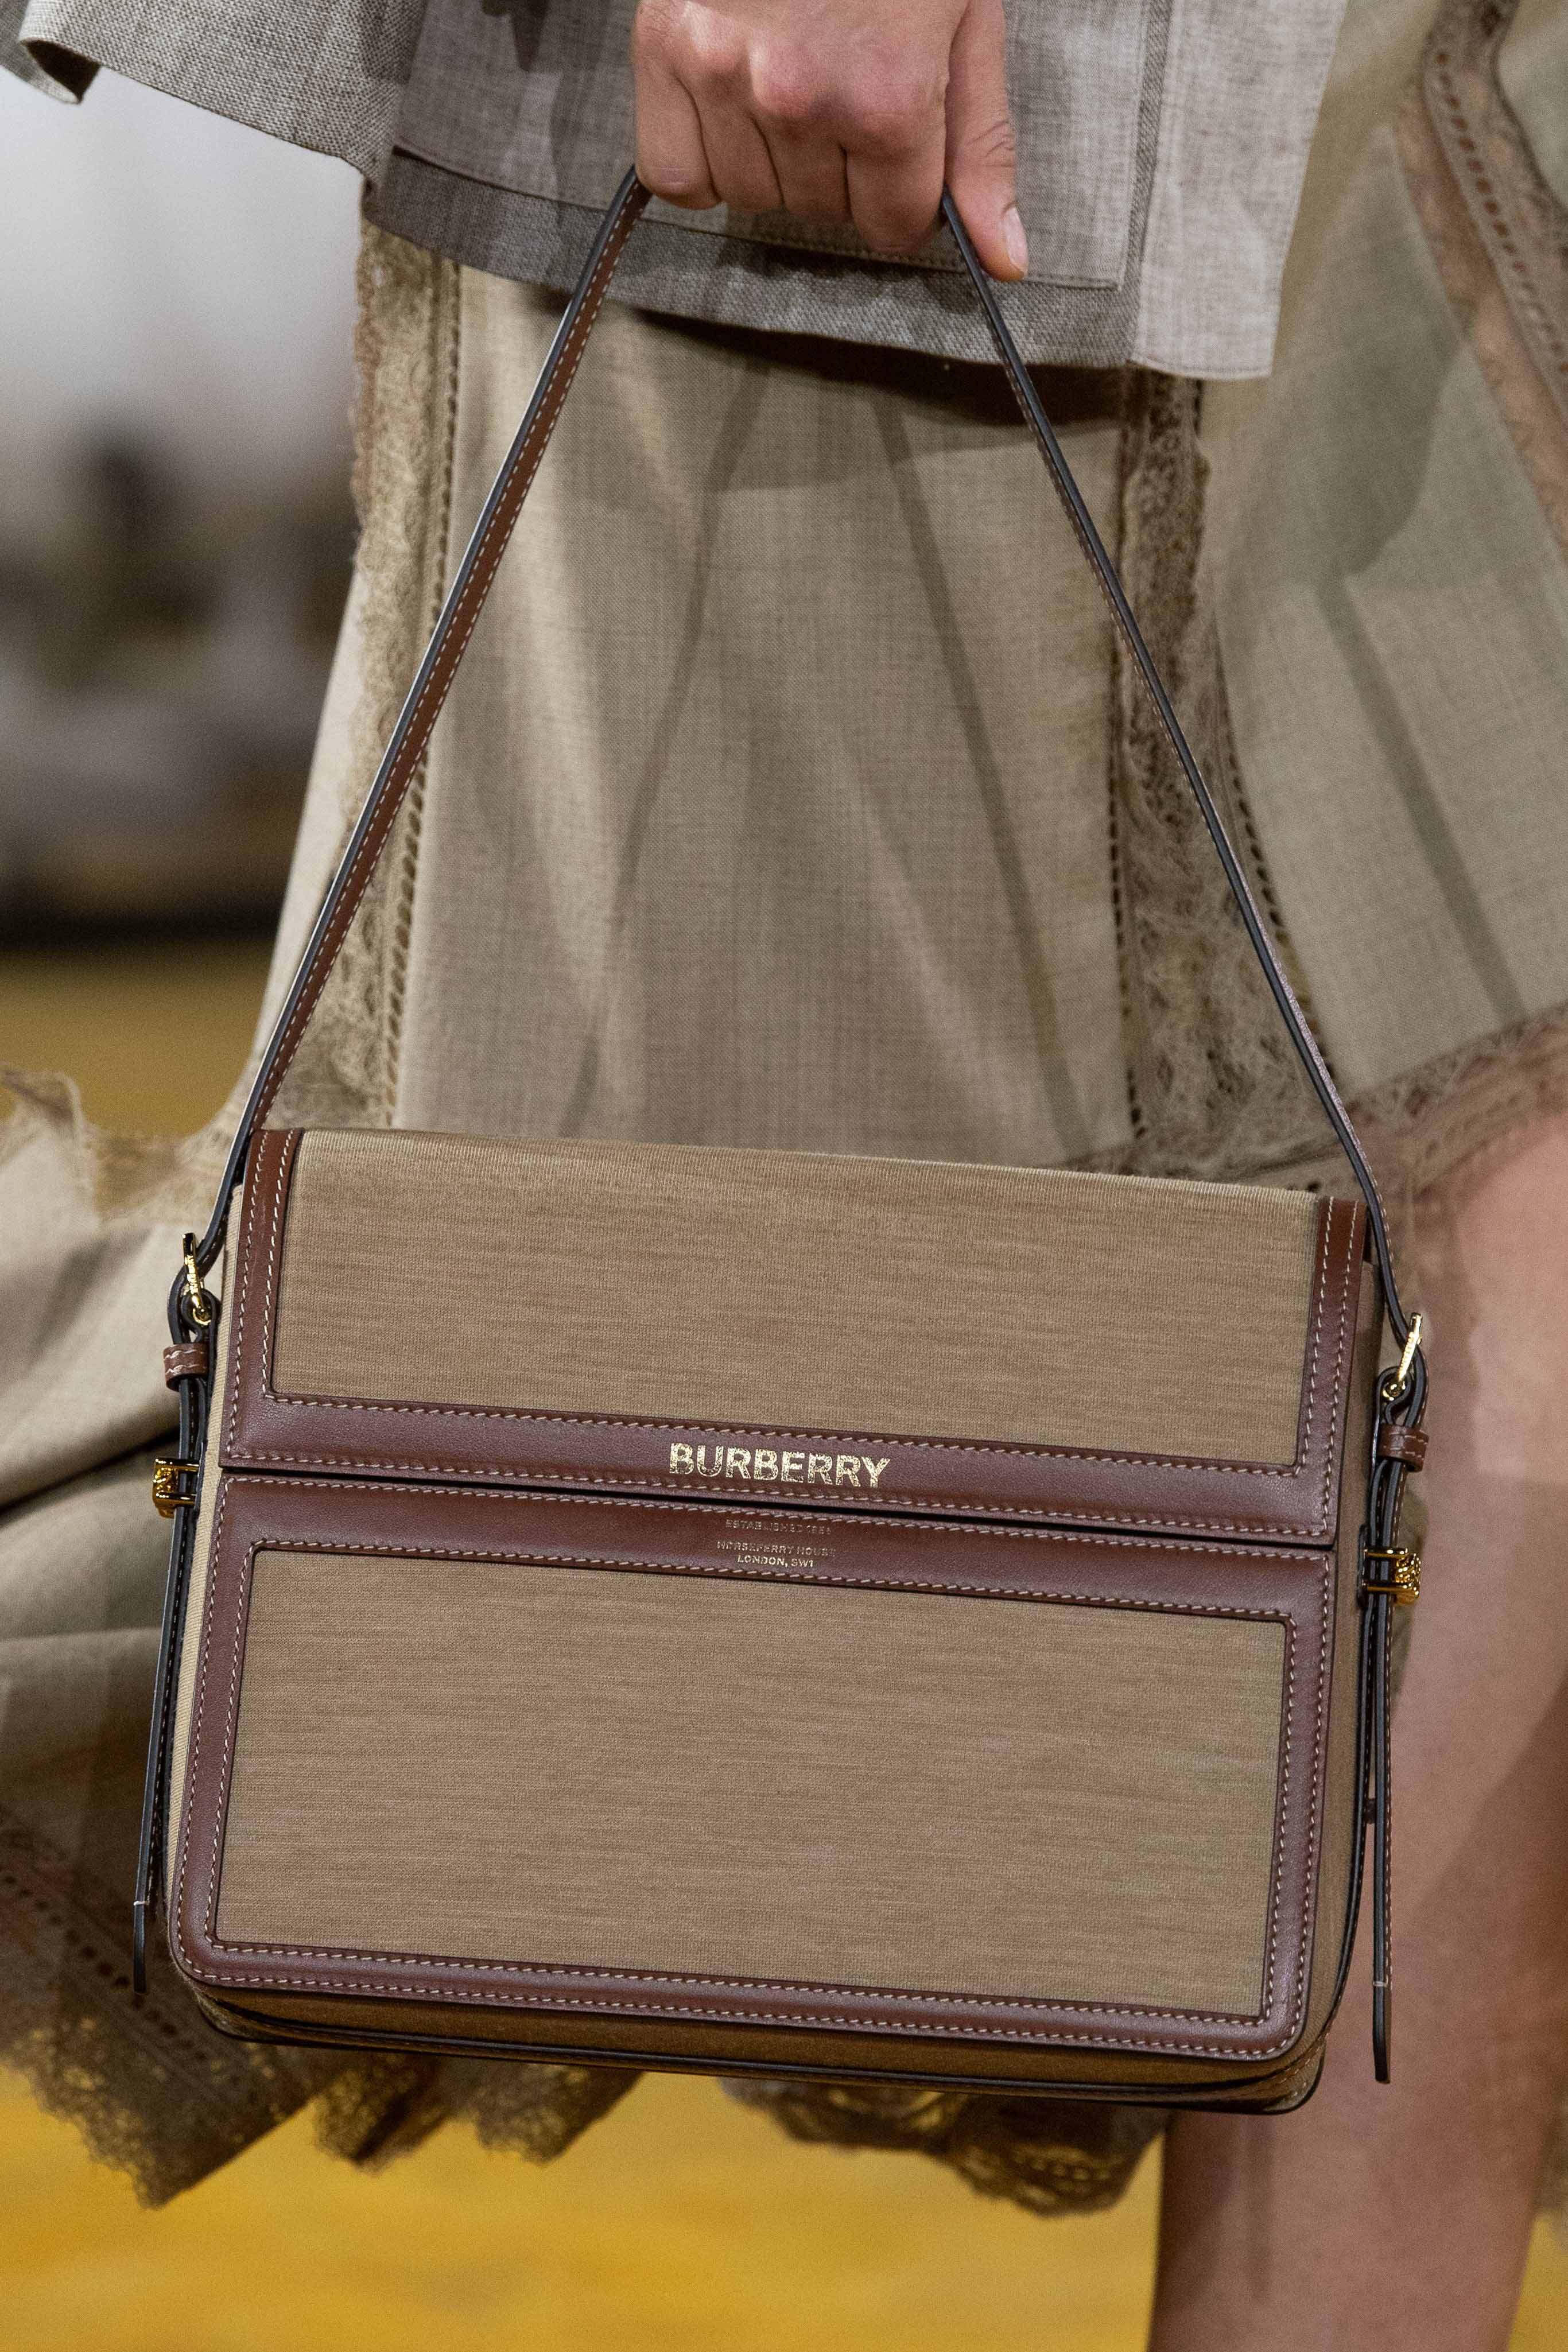 Burberry Spring Summer 2020 SS2020 trends runway coverage Ready To Wear Vogue bag